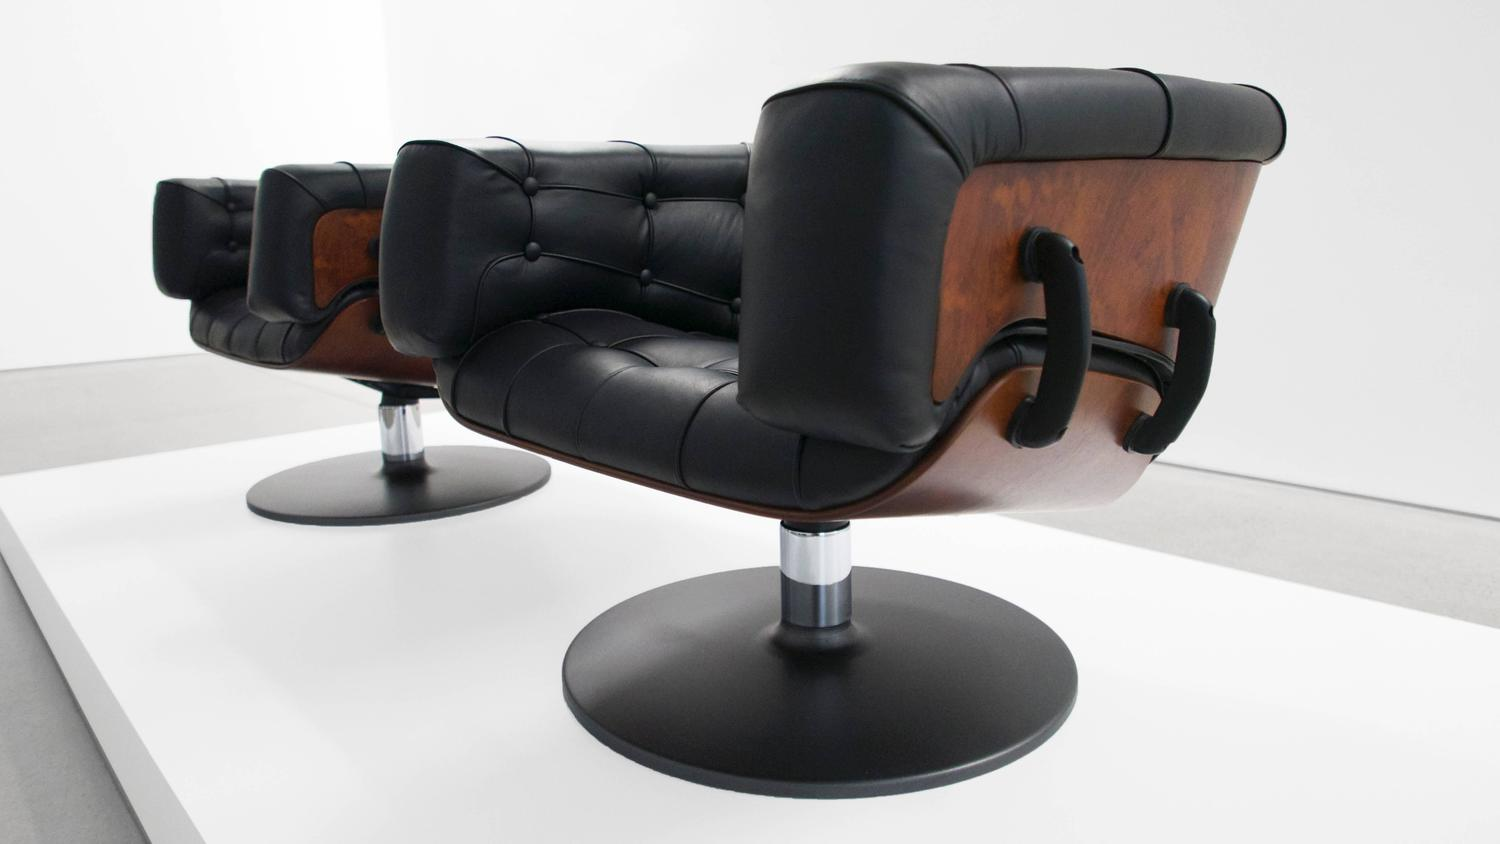 Martin grierson 39 london 39 chairs for sale at 1stdibs for Designer furniture sale london